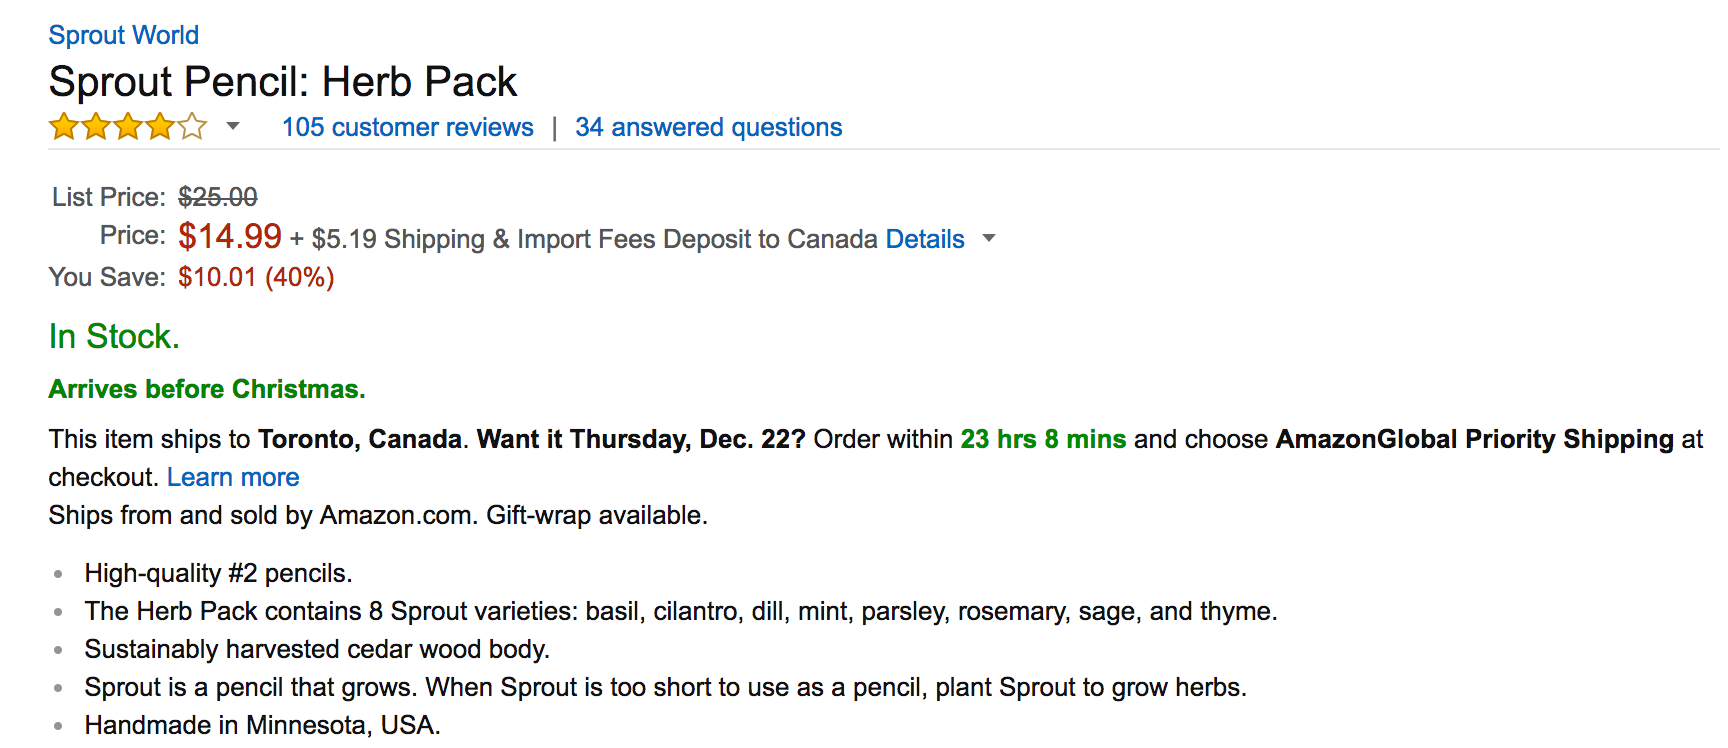 sprout-pencil-herb-pack-3